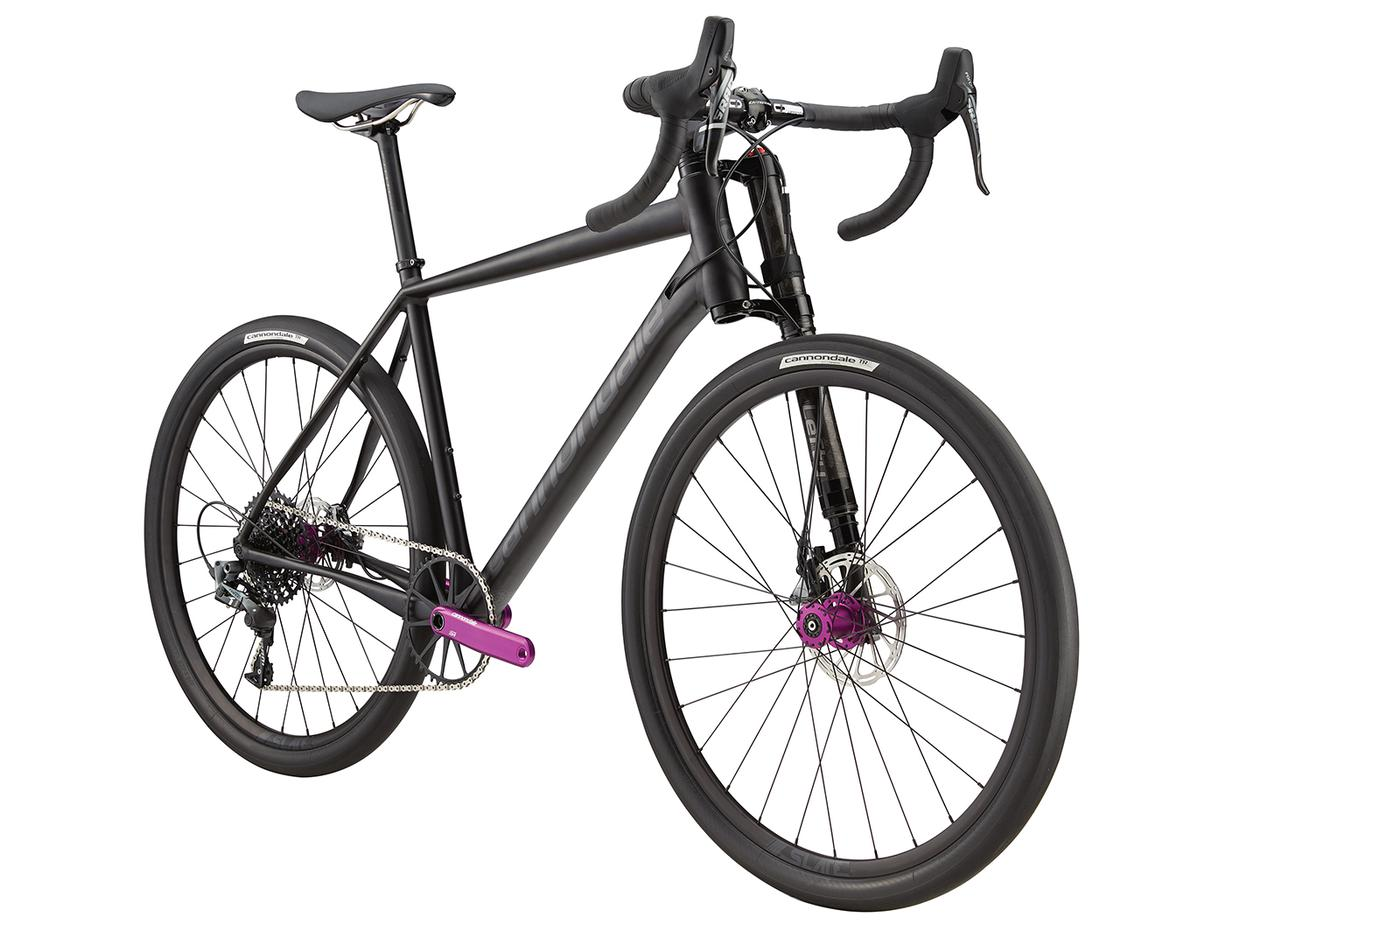 Cannondale's Slate All-Road Suspension Bike is On the Way